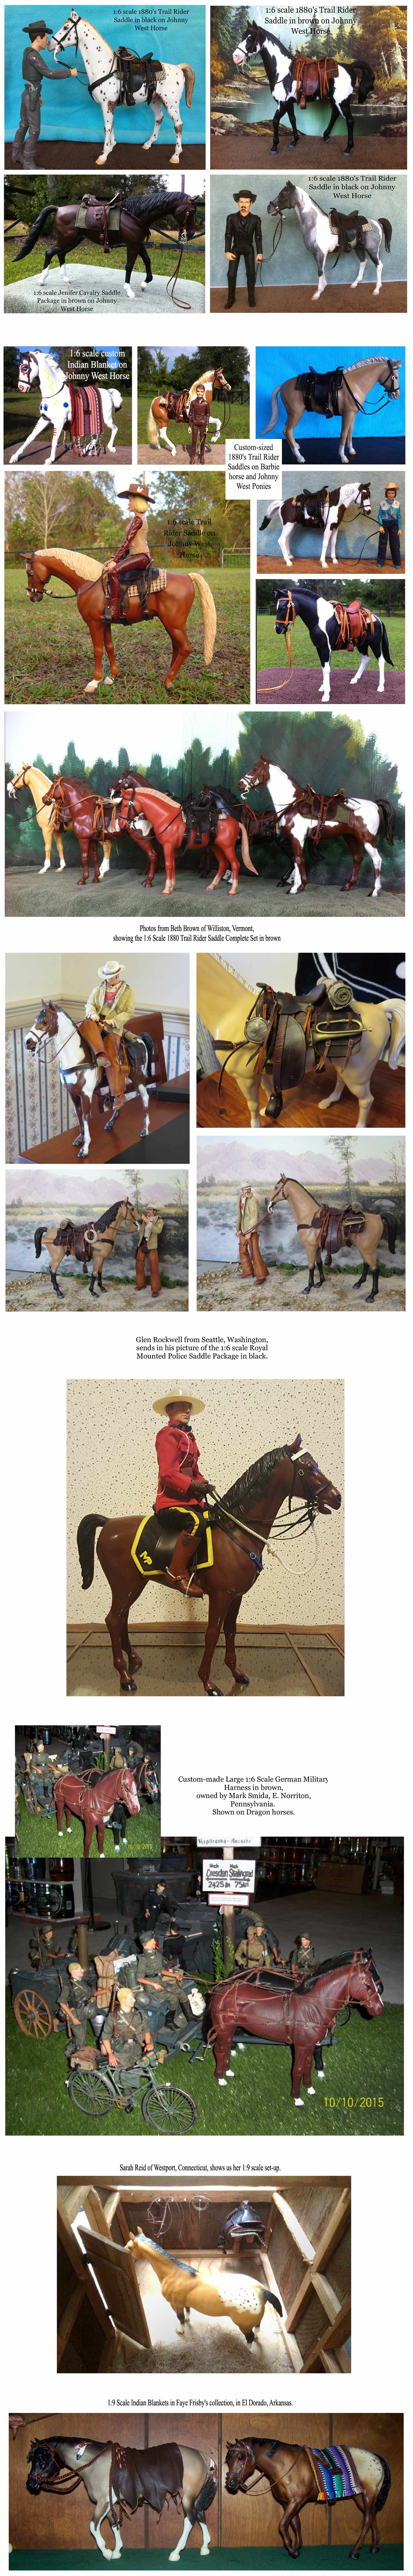 This page features photos from our customers--showing off their tack and accessories from Ben's Custom Tack. If you have some to share, please email to: barbara@benscustomtack.com.